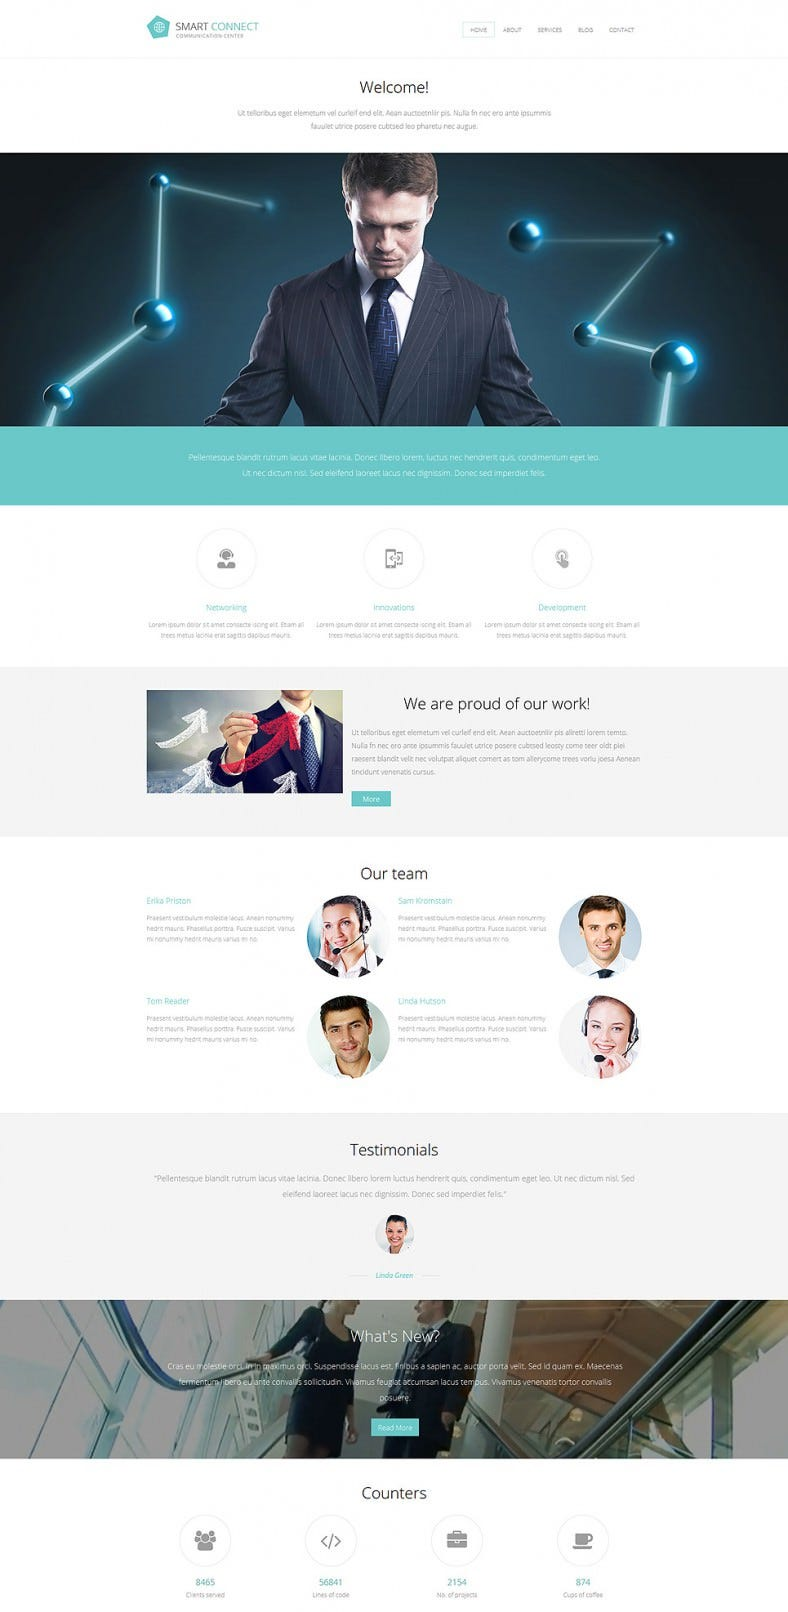 Communications-Responsive-Joomla-Template-788x1612.jpg